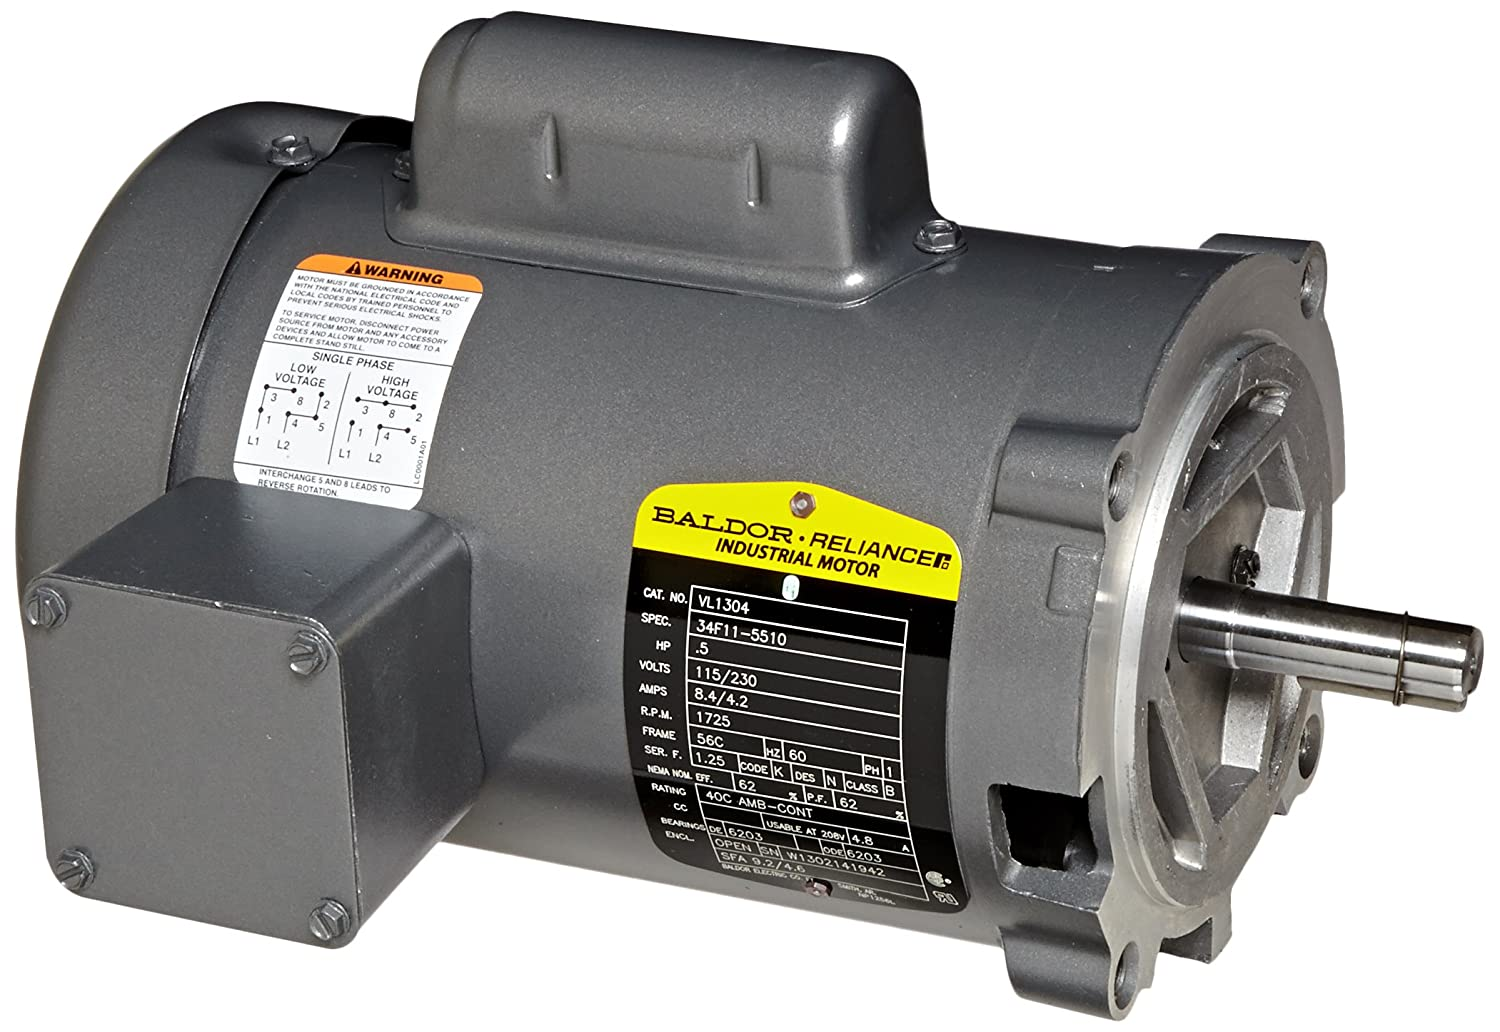 Presentation Bill Colton Baldor Electric  pany Motor in addition Catalog Wegelectric   Img Wiring Diagrams Pdf as well Ac Motors Baldor together with Ceswdm3555t Baldor Three Phase Totally Enclosed Paint Free Motor 2hp 3450rpm 145tc Frame Upc 781568519684 furthermore 11. on baldor motor catalog pdf